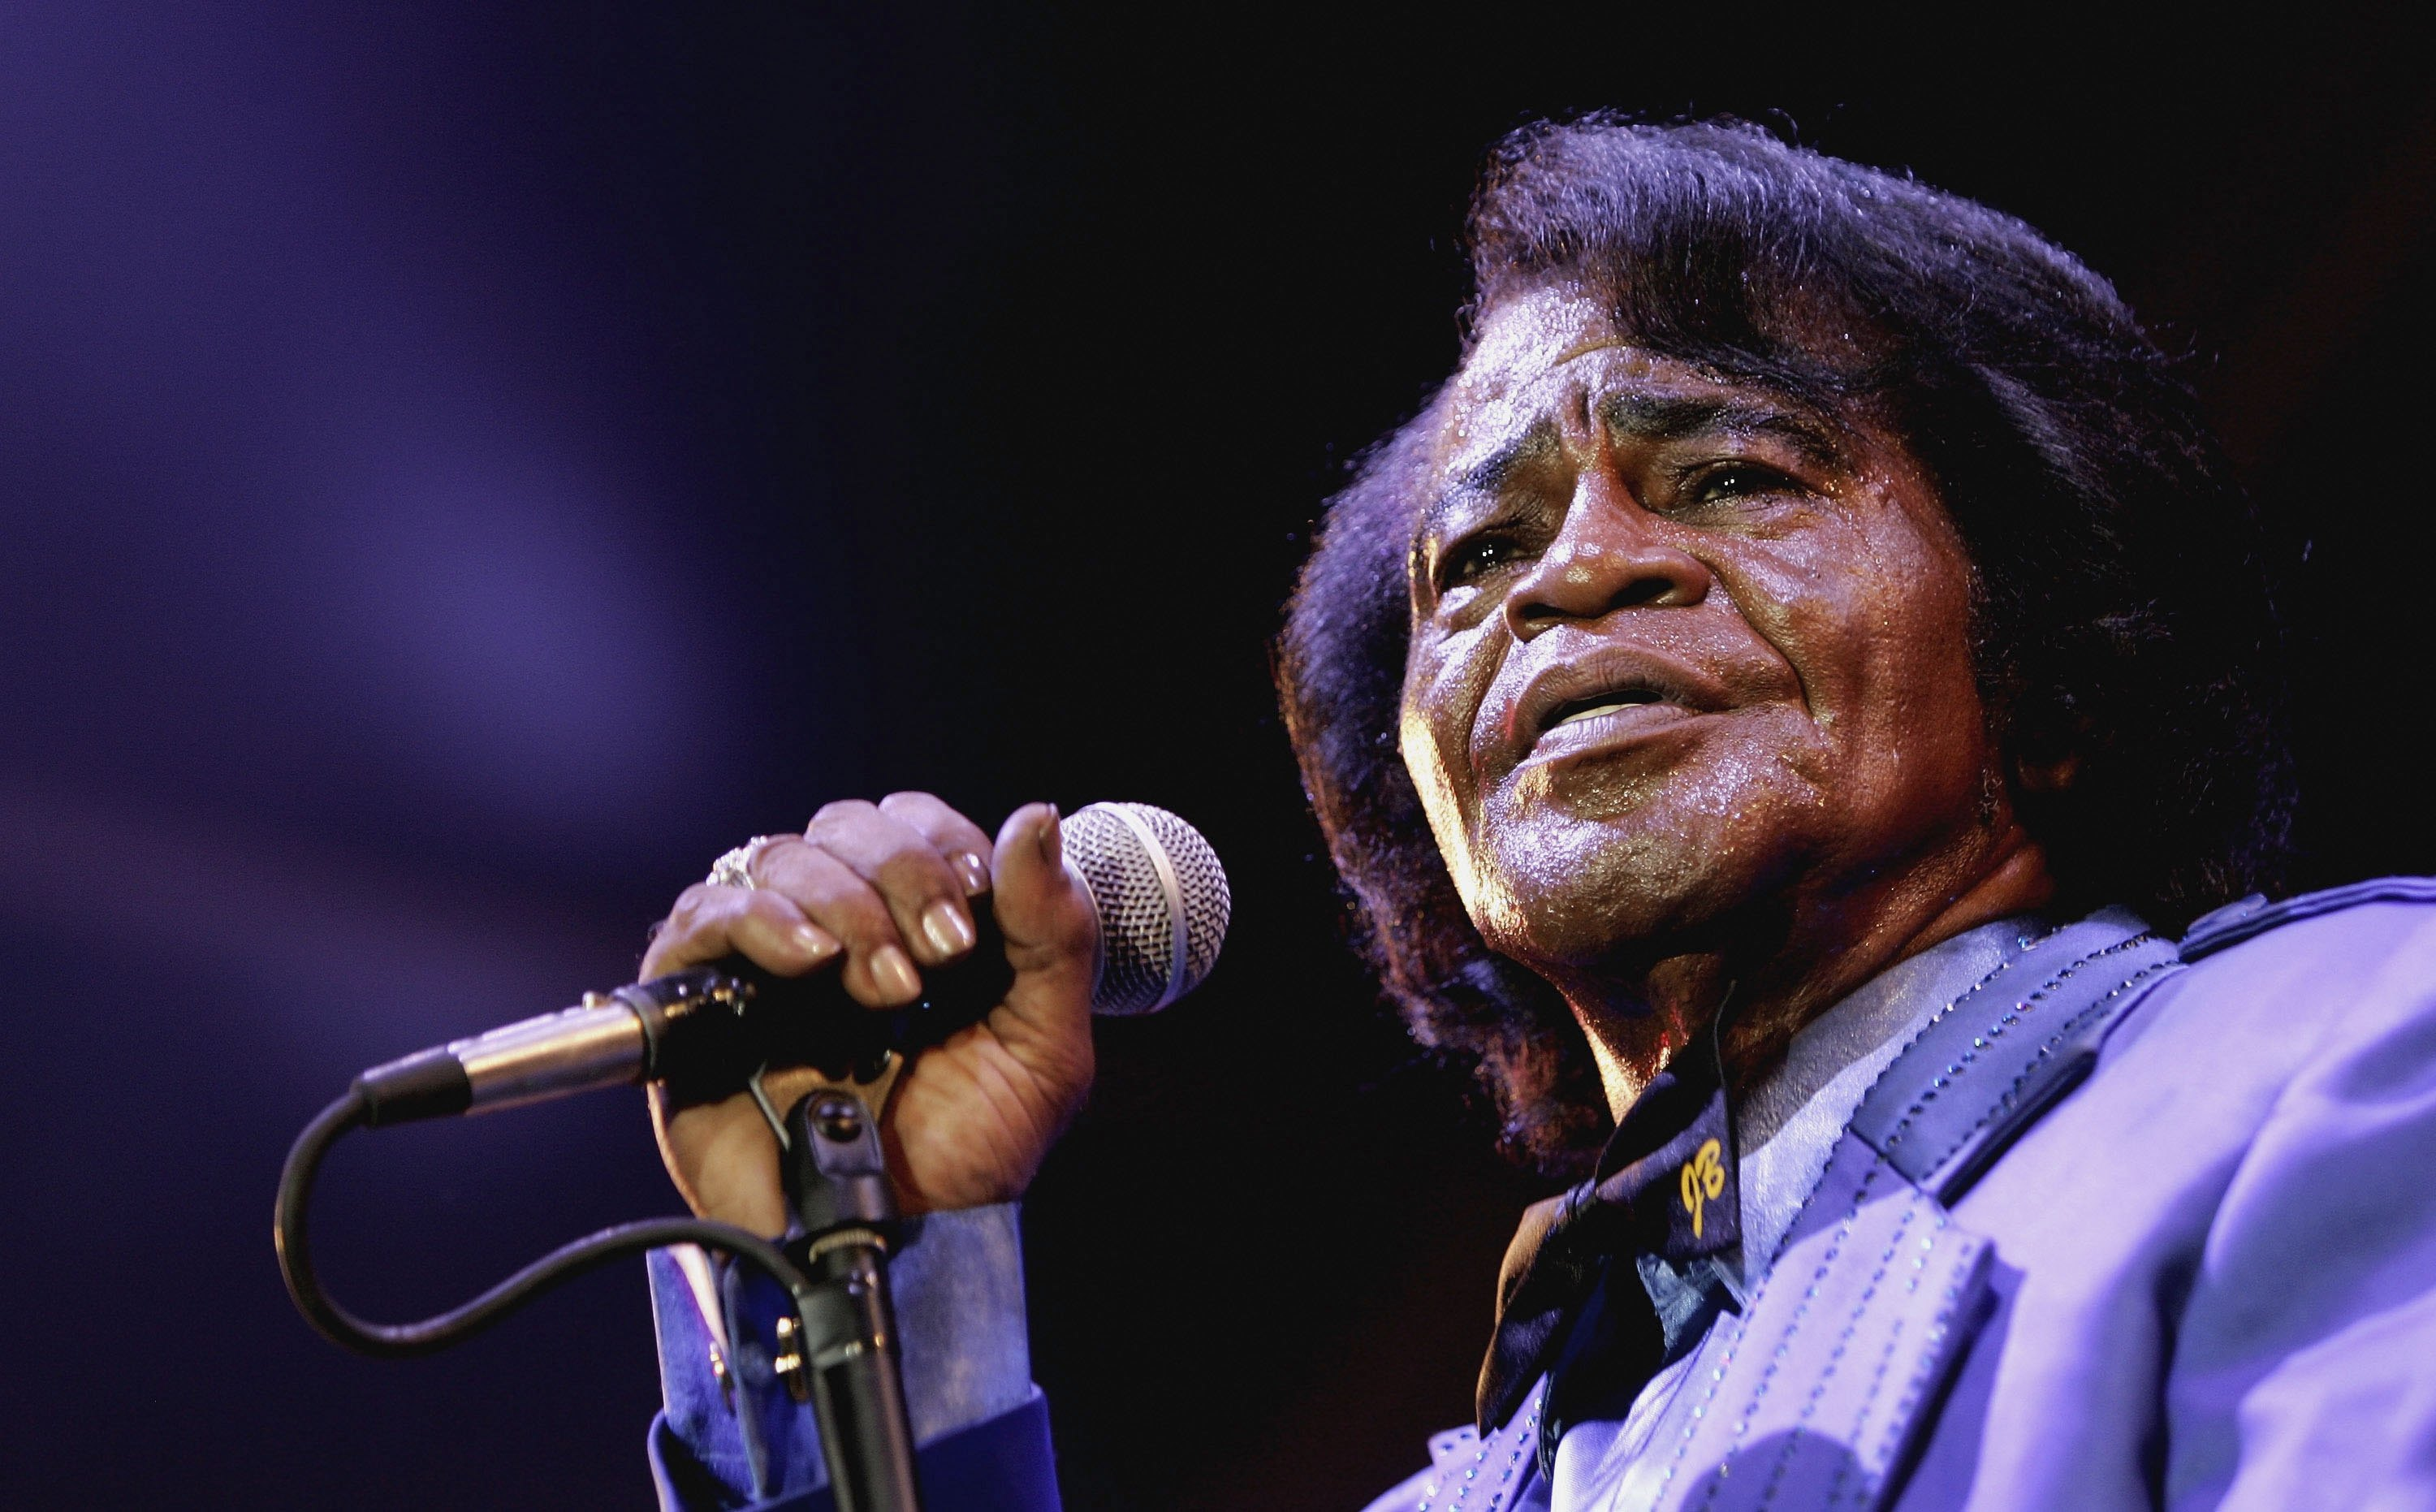 James Brown's death inquiry faces uncertain future after Atlanta district attorney is voted out